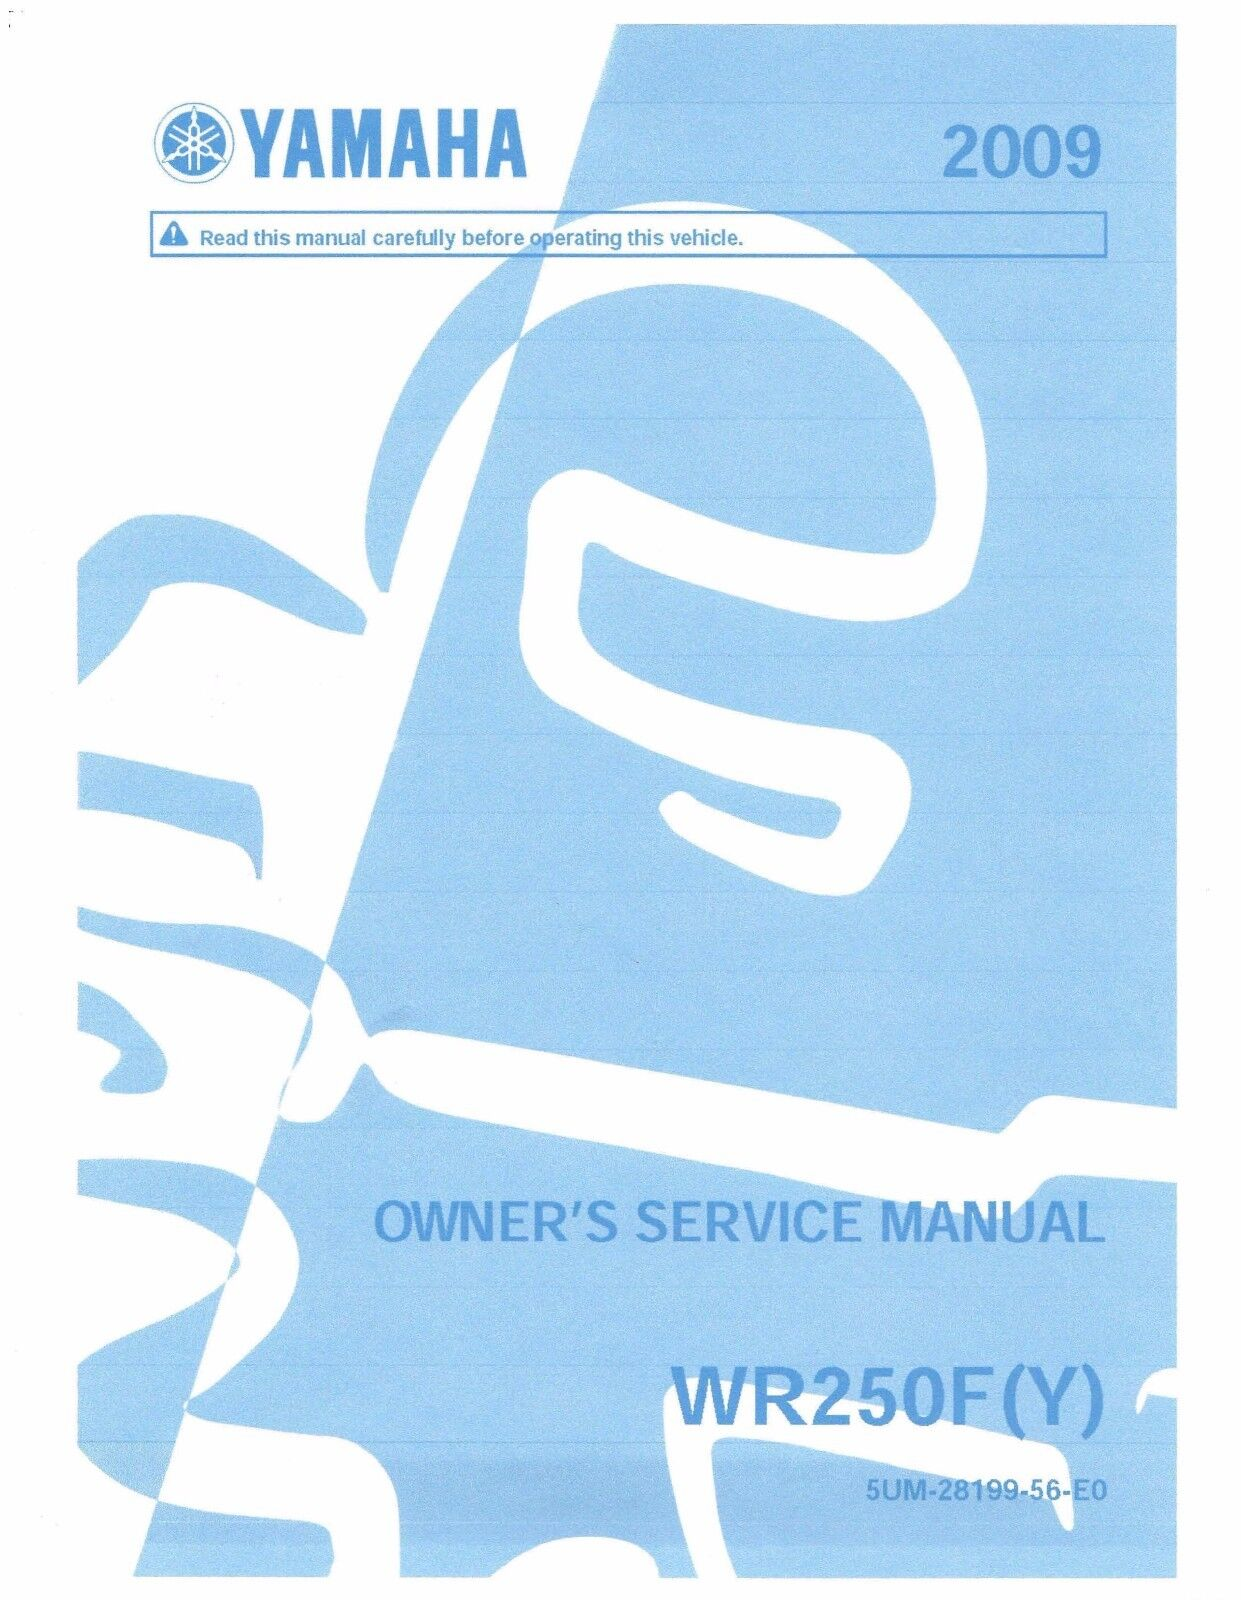 Yamaha owners service workshop manual 2009 WR250F (Y) 1 of 12Only 1  available ...